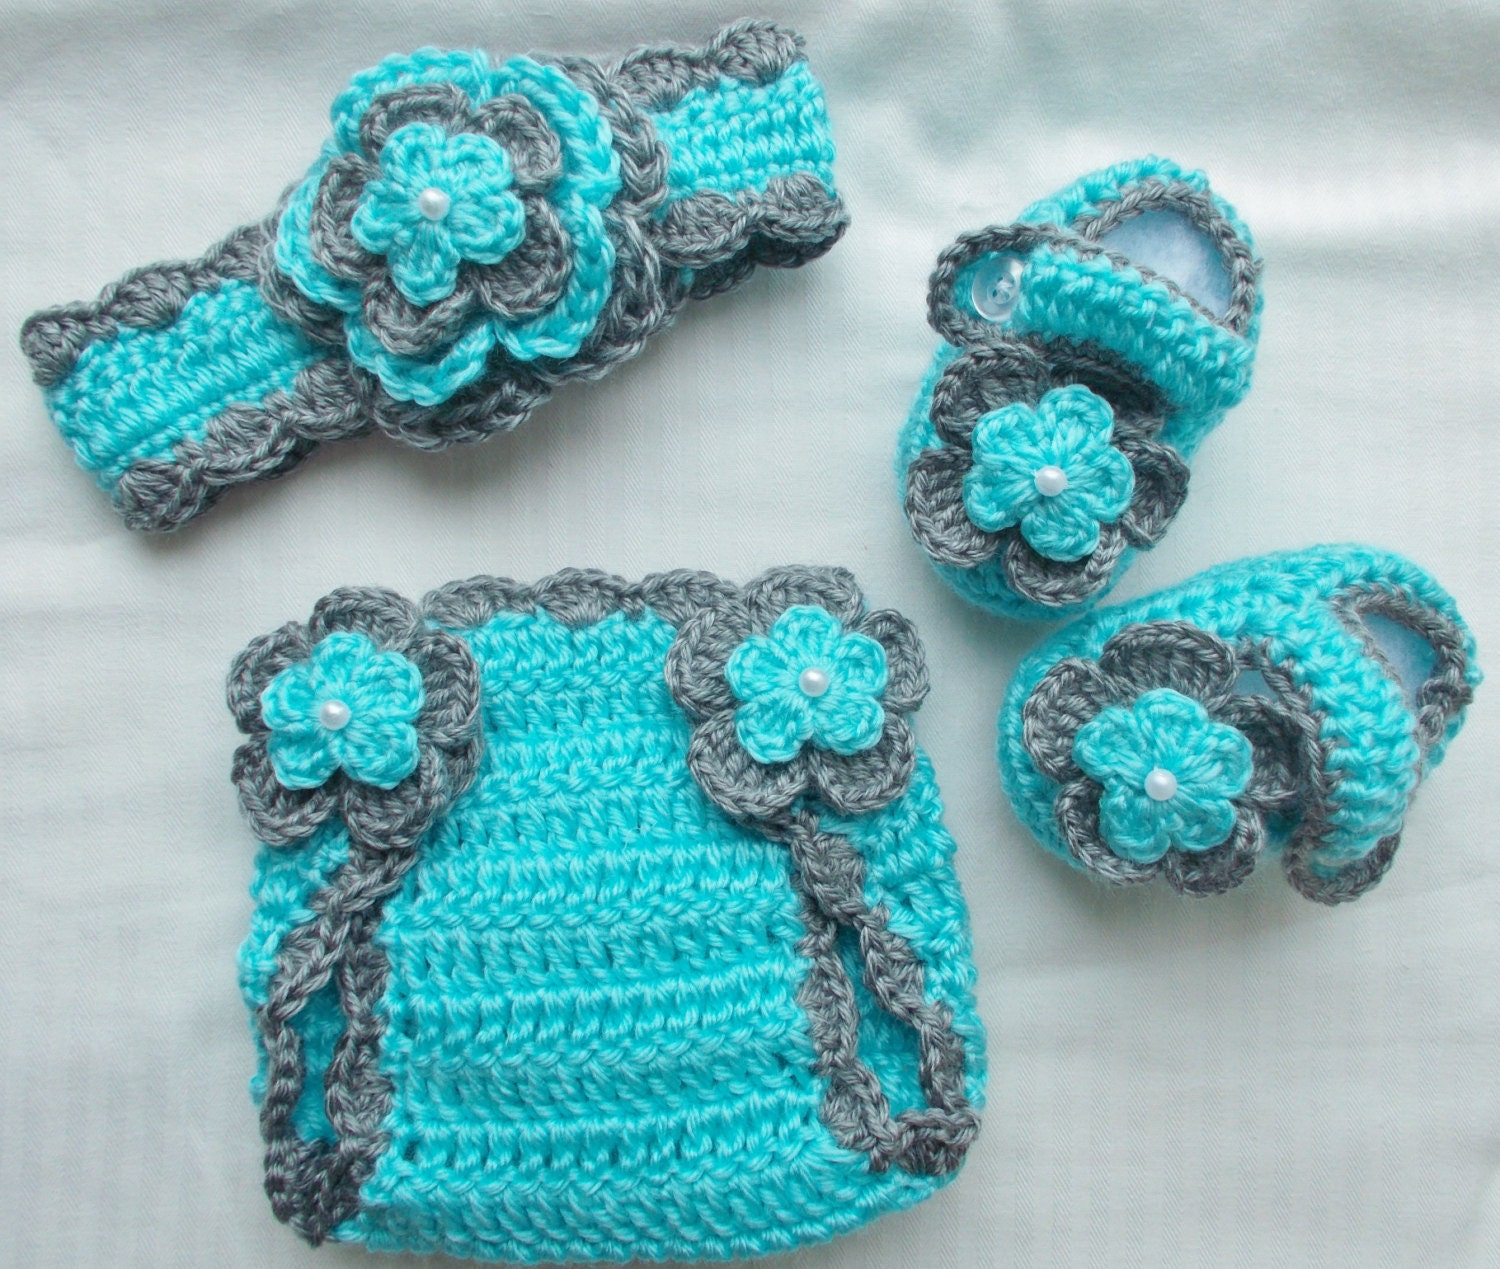 Find and save ideas about Crochet baby headbands on Pinterest.   See more ideas about Crochet headband pattern, Crochet headband free and Easy crochet headbands. DIY and crafts Crochet Patterns baby booties scarf headband scrubbies by ketzl Items similar to PDF Pattern Crochet Headband Plumeria Flower Newborn, Baby, .